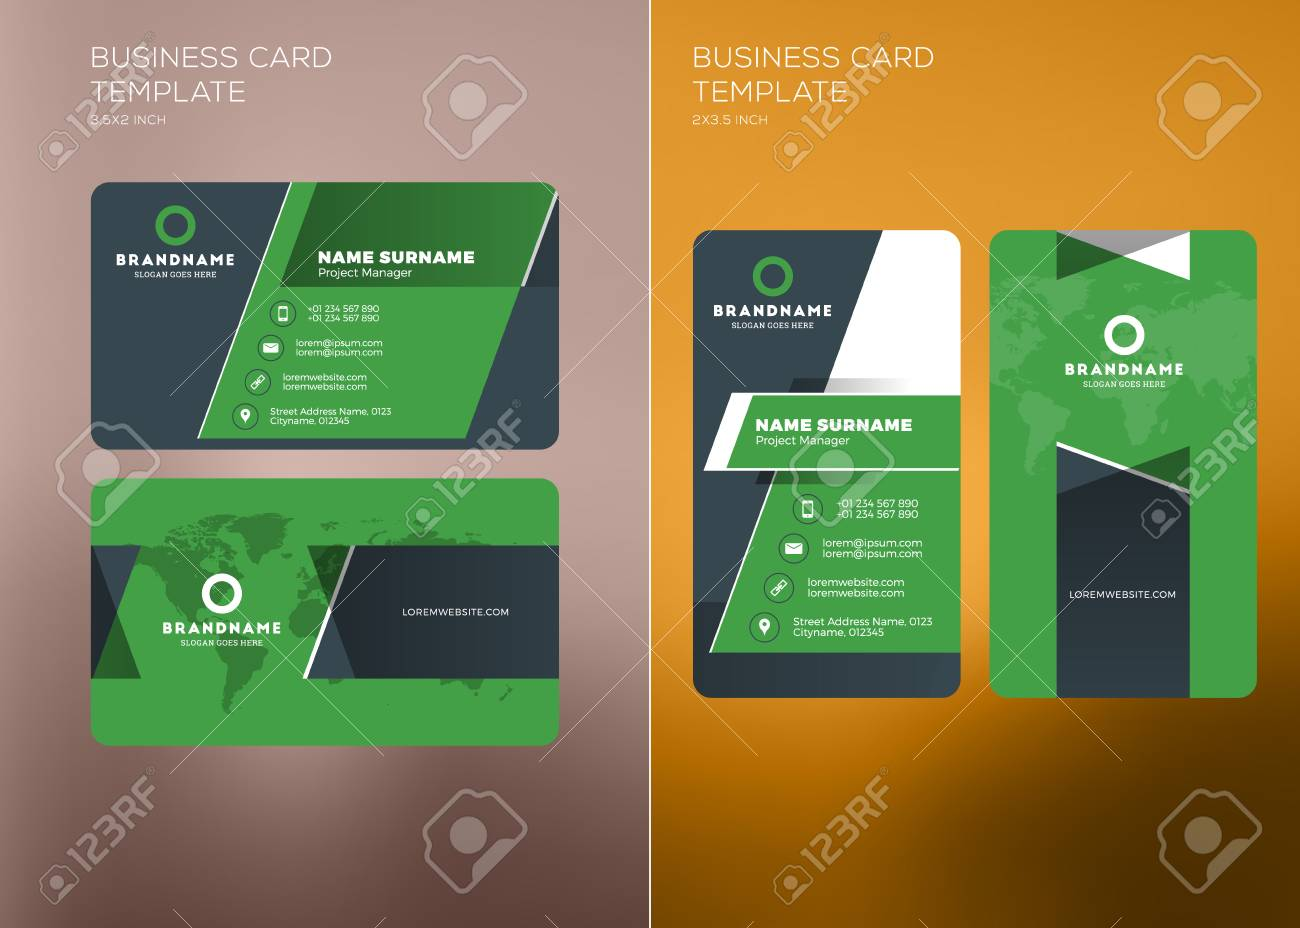 Corporate business card print template personal visiting card corporate business card print template personal visiting card with company logo vertical and horizontal wajeb